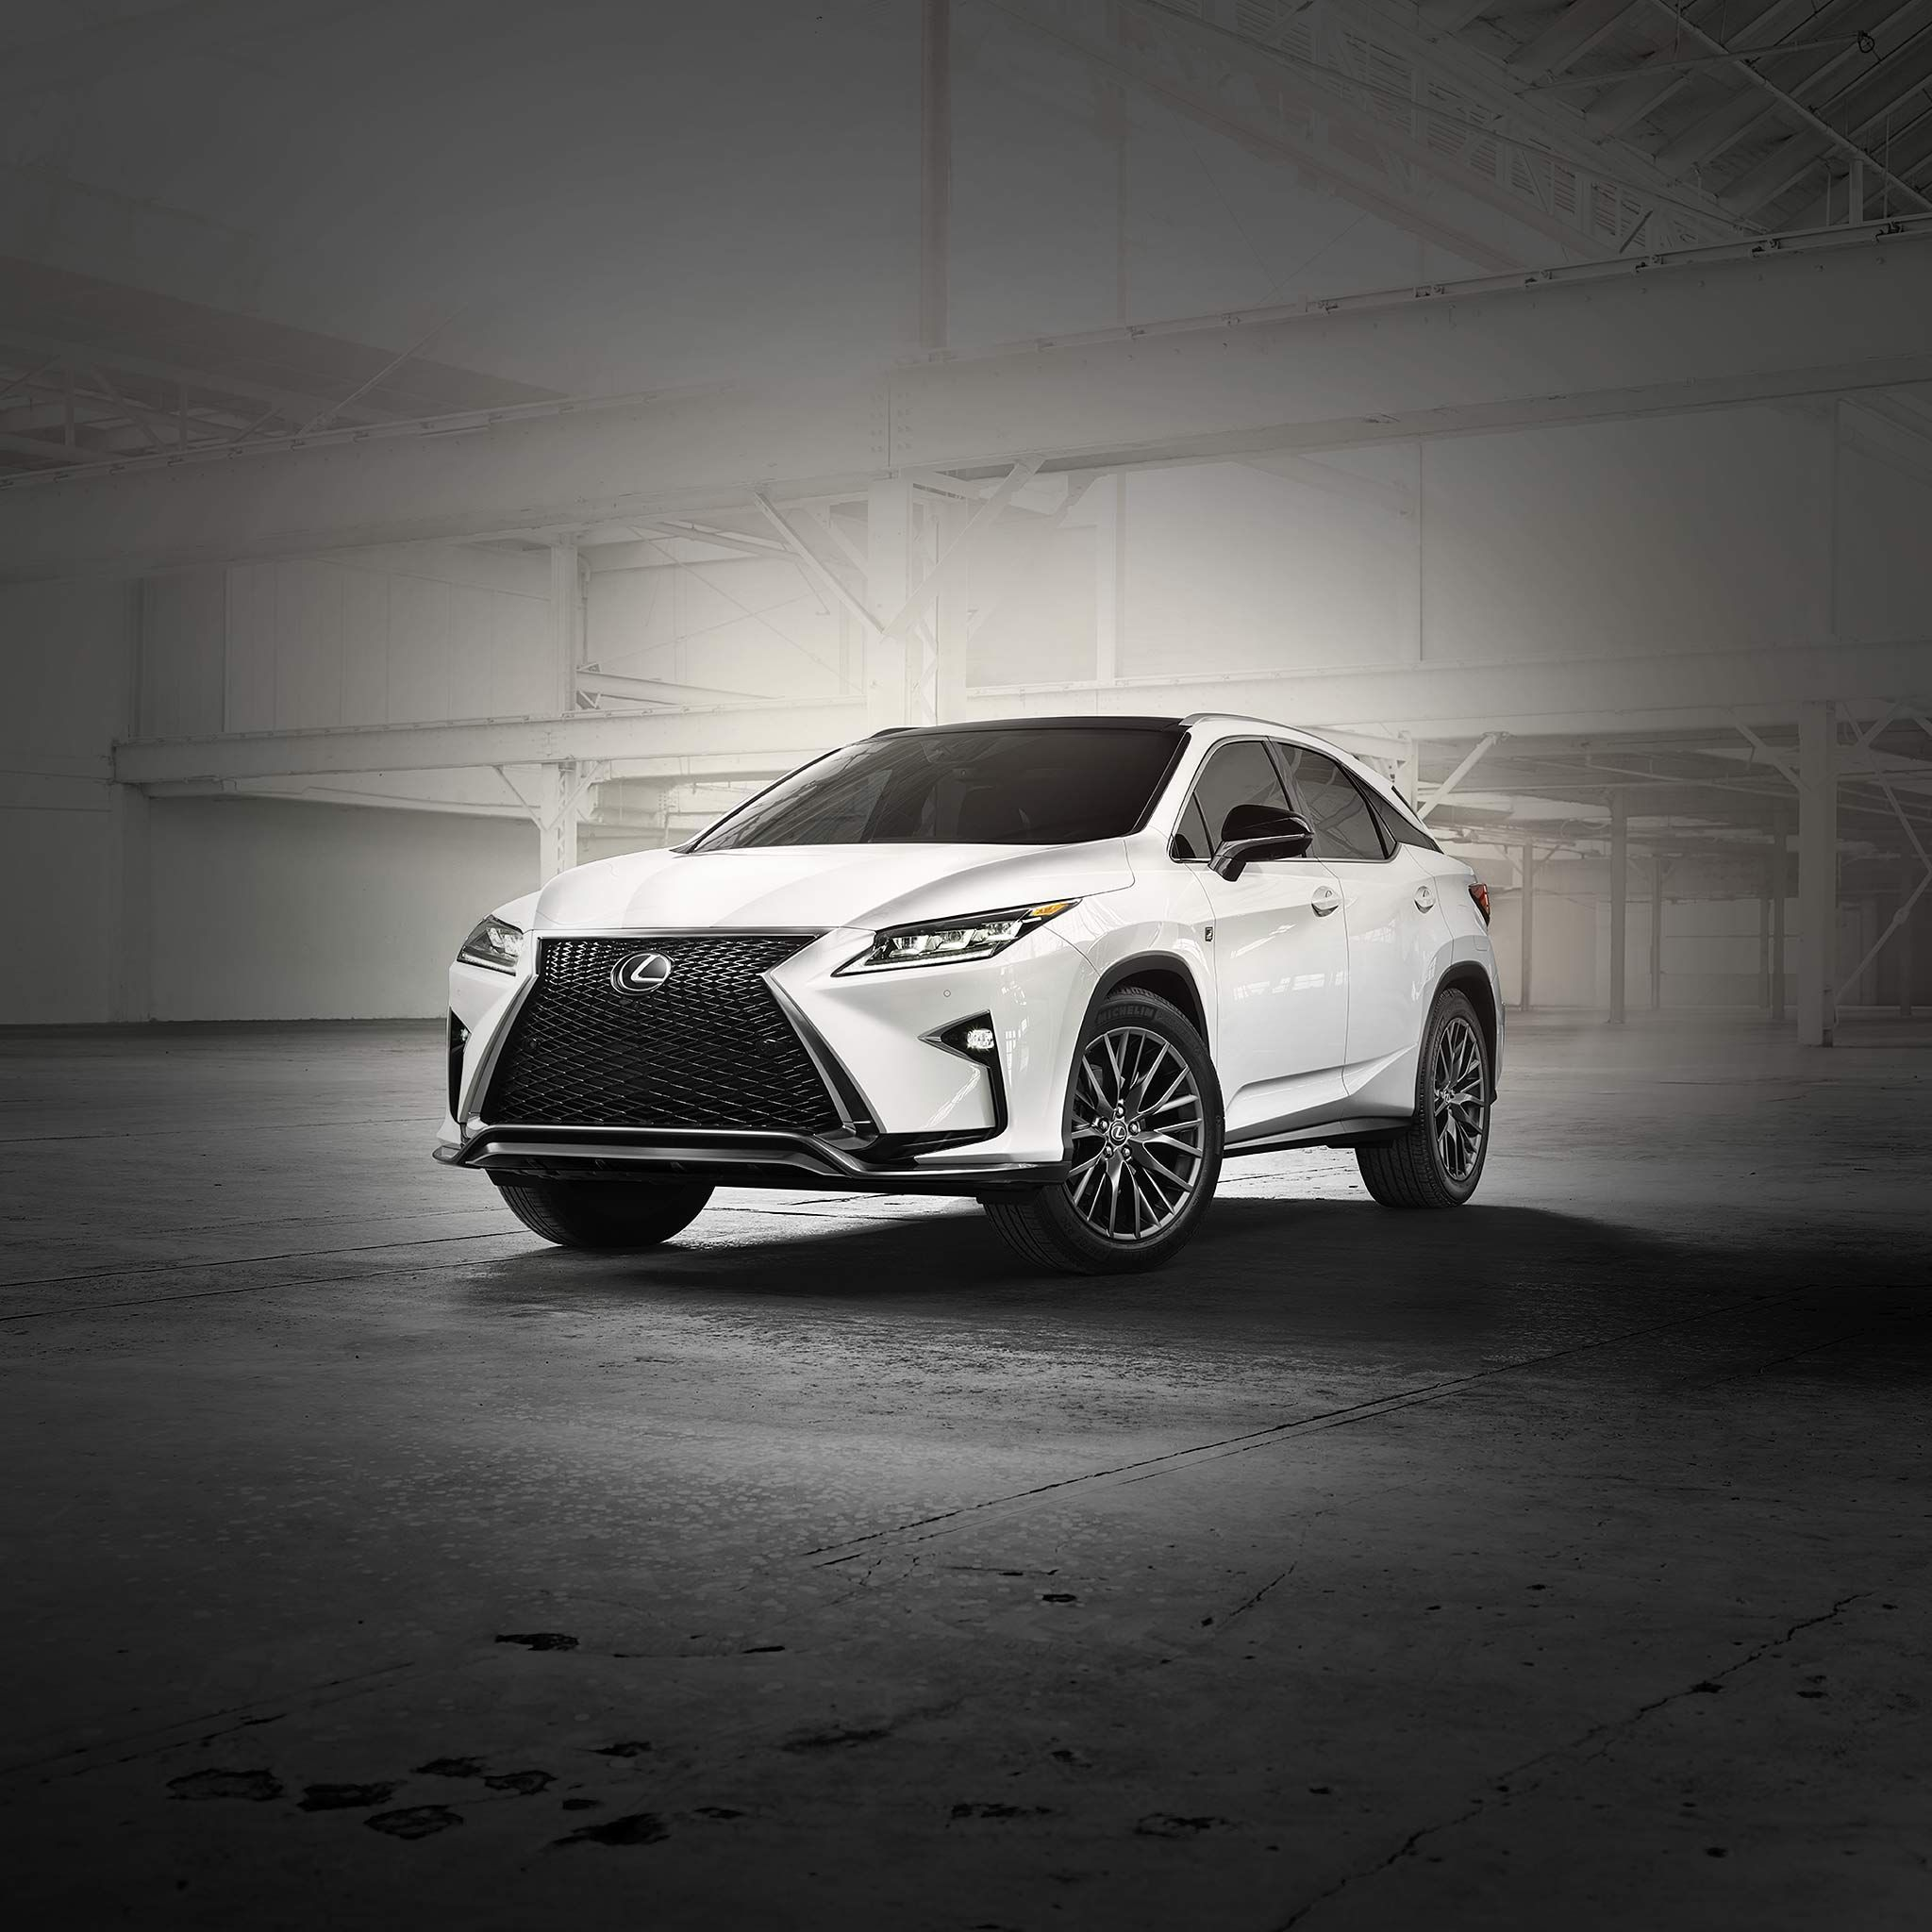 Introducing the allnew Lexus RX Lexus rx